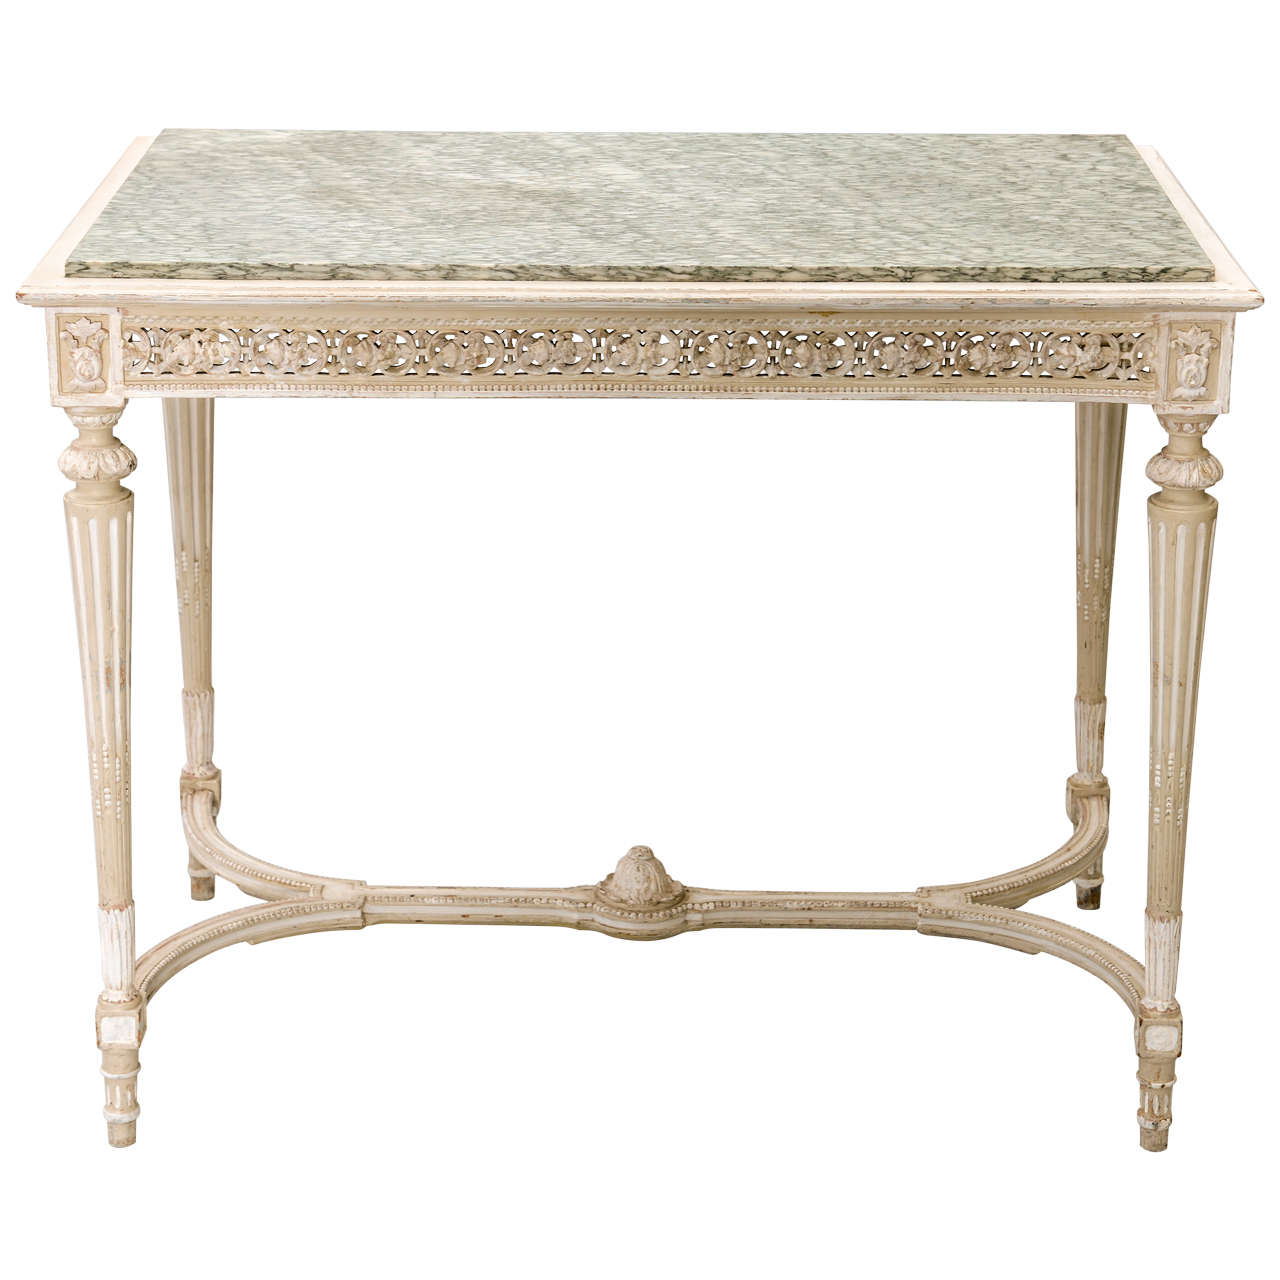 Painted French 19c. Console/Center Table with Marble Top